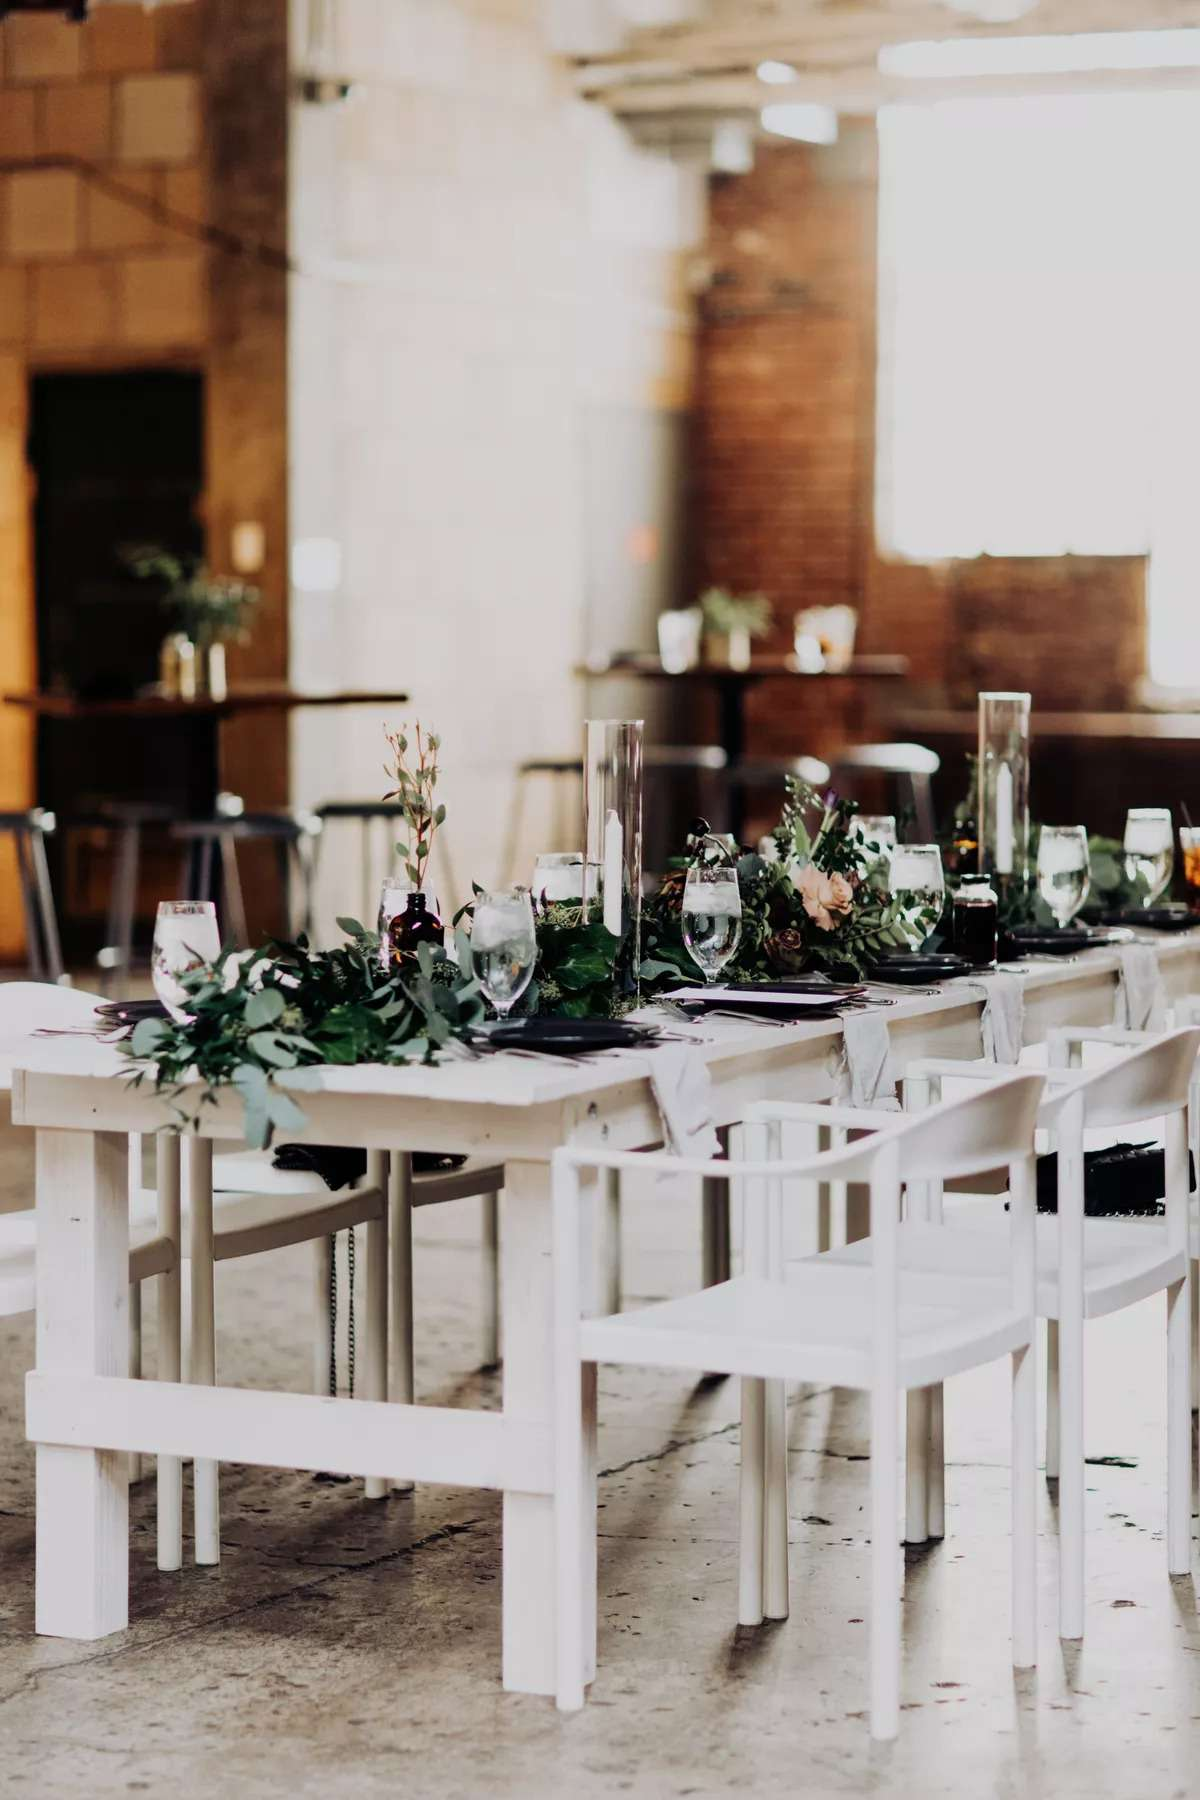 Seated brunch featuring whitewashed tables